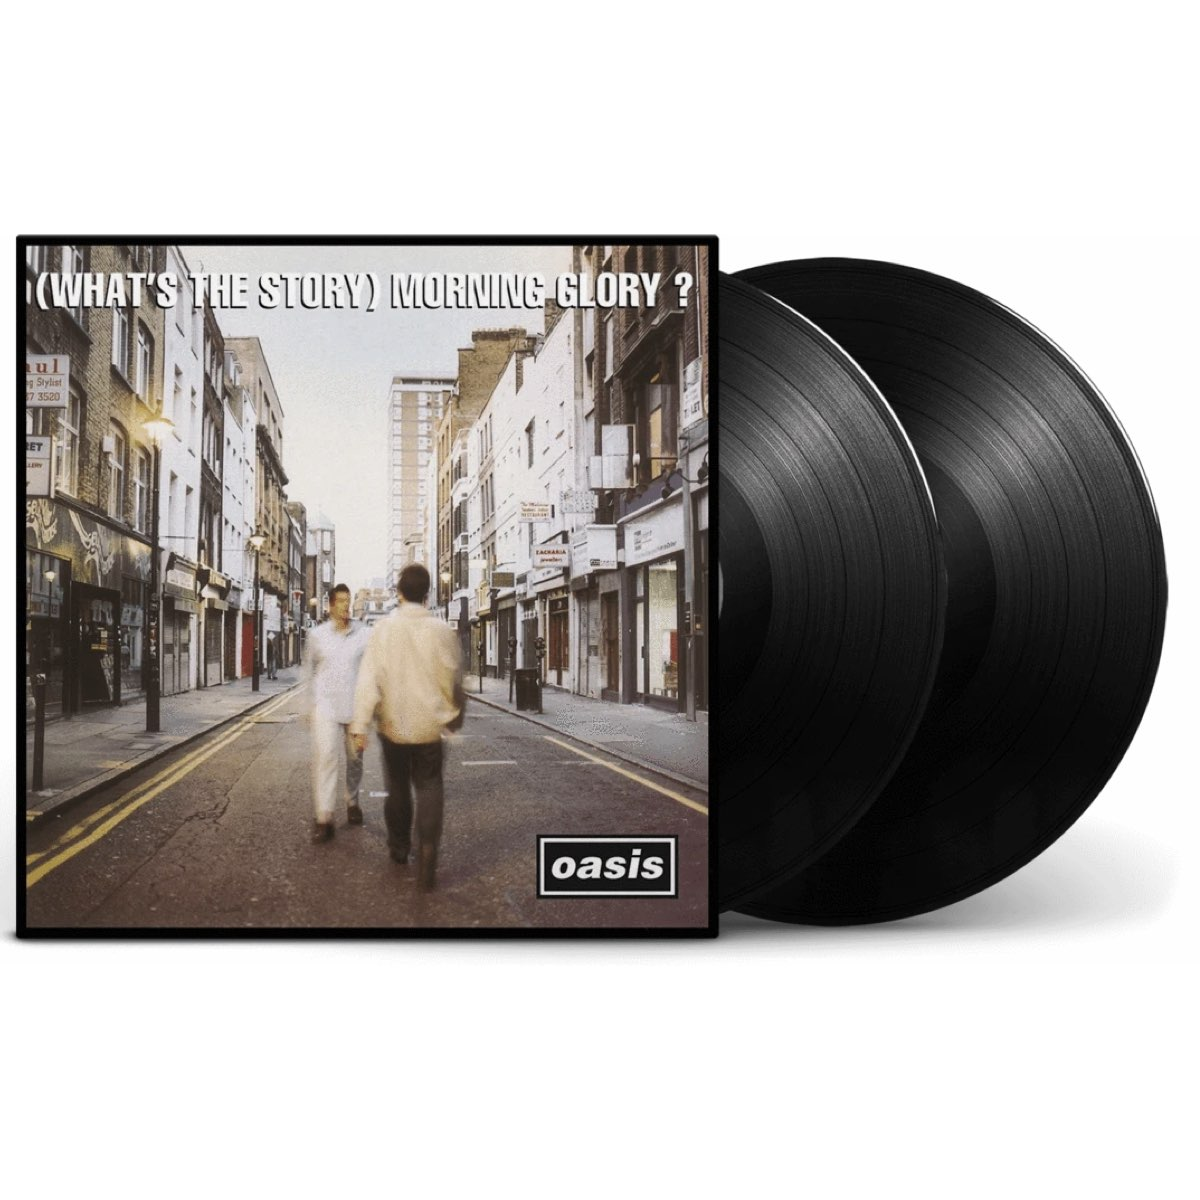 OUTLET - Oasis - (What's the Story) Morning Glory? [Double Black Vinyl] - PEQUENA AVARIA - LEIA A DESCRIÇÃO